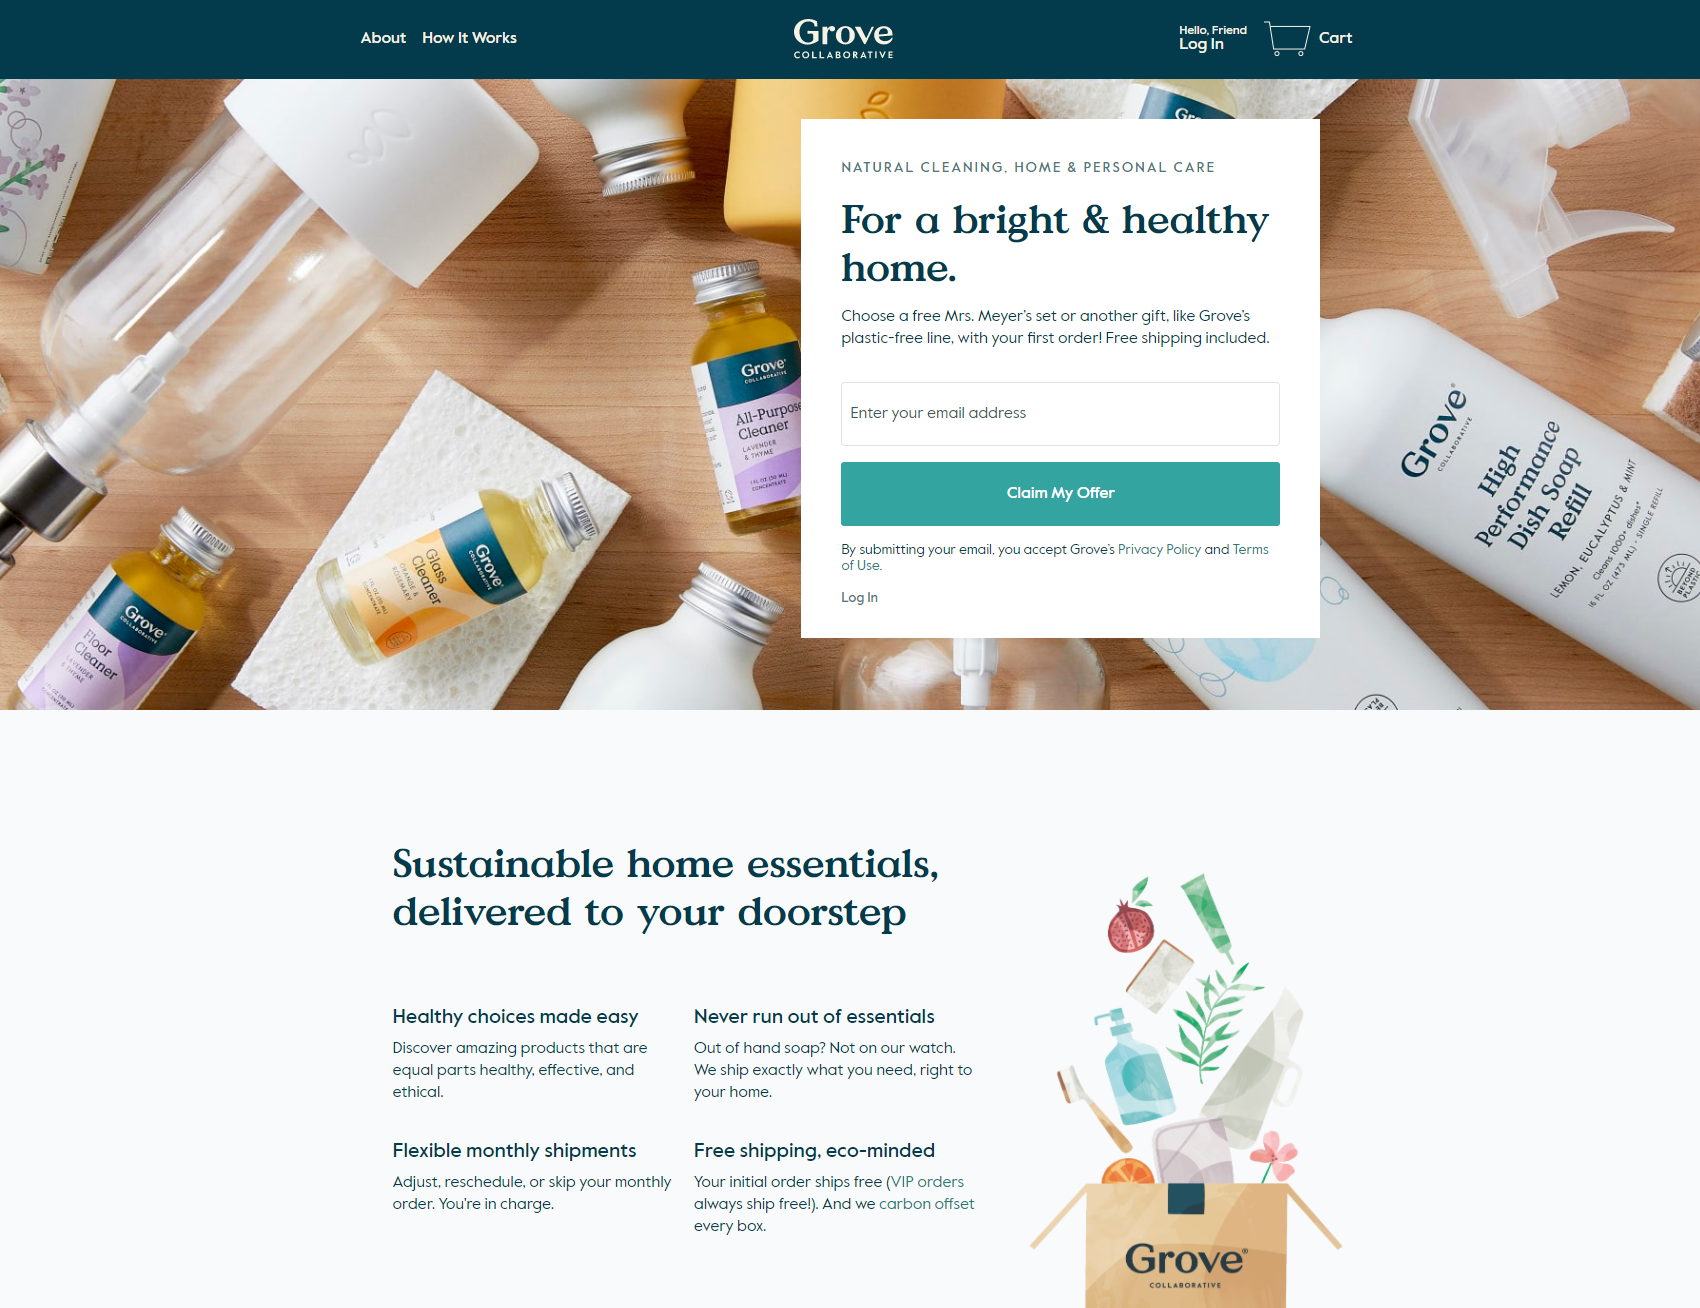 Sustainable home essentials, delivered to your doorstep